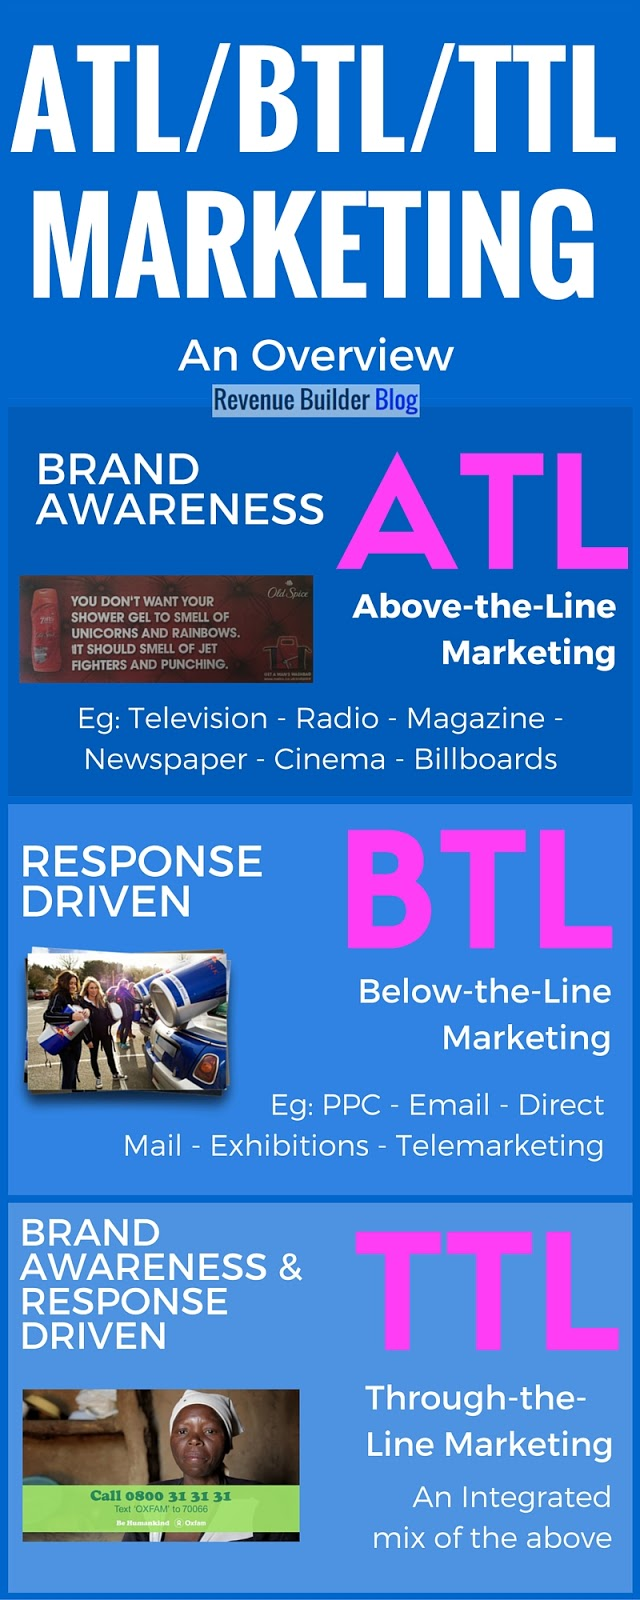 ATL/BTL/TTL marketing meaning infographic